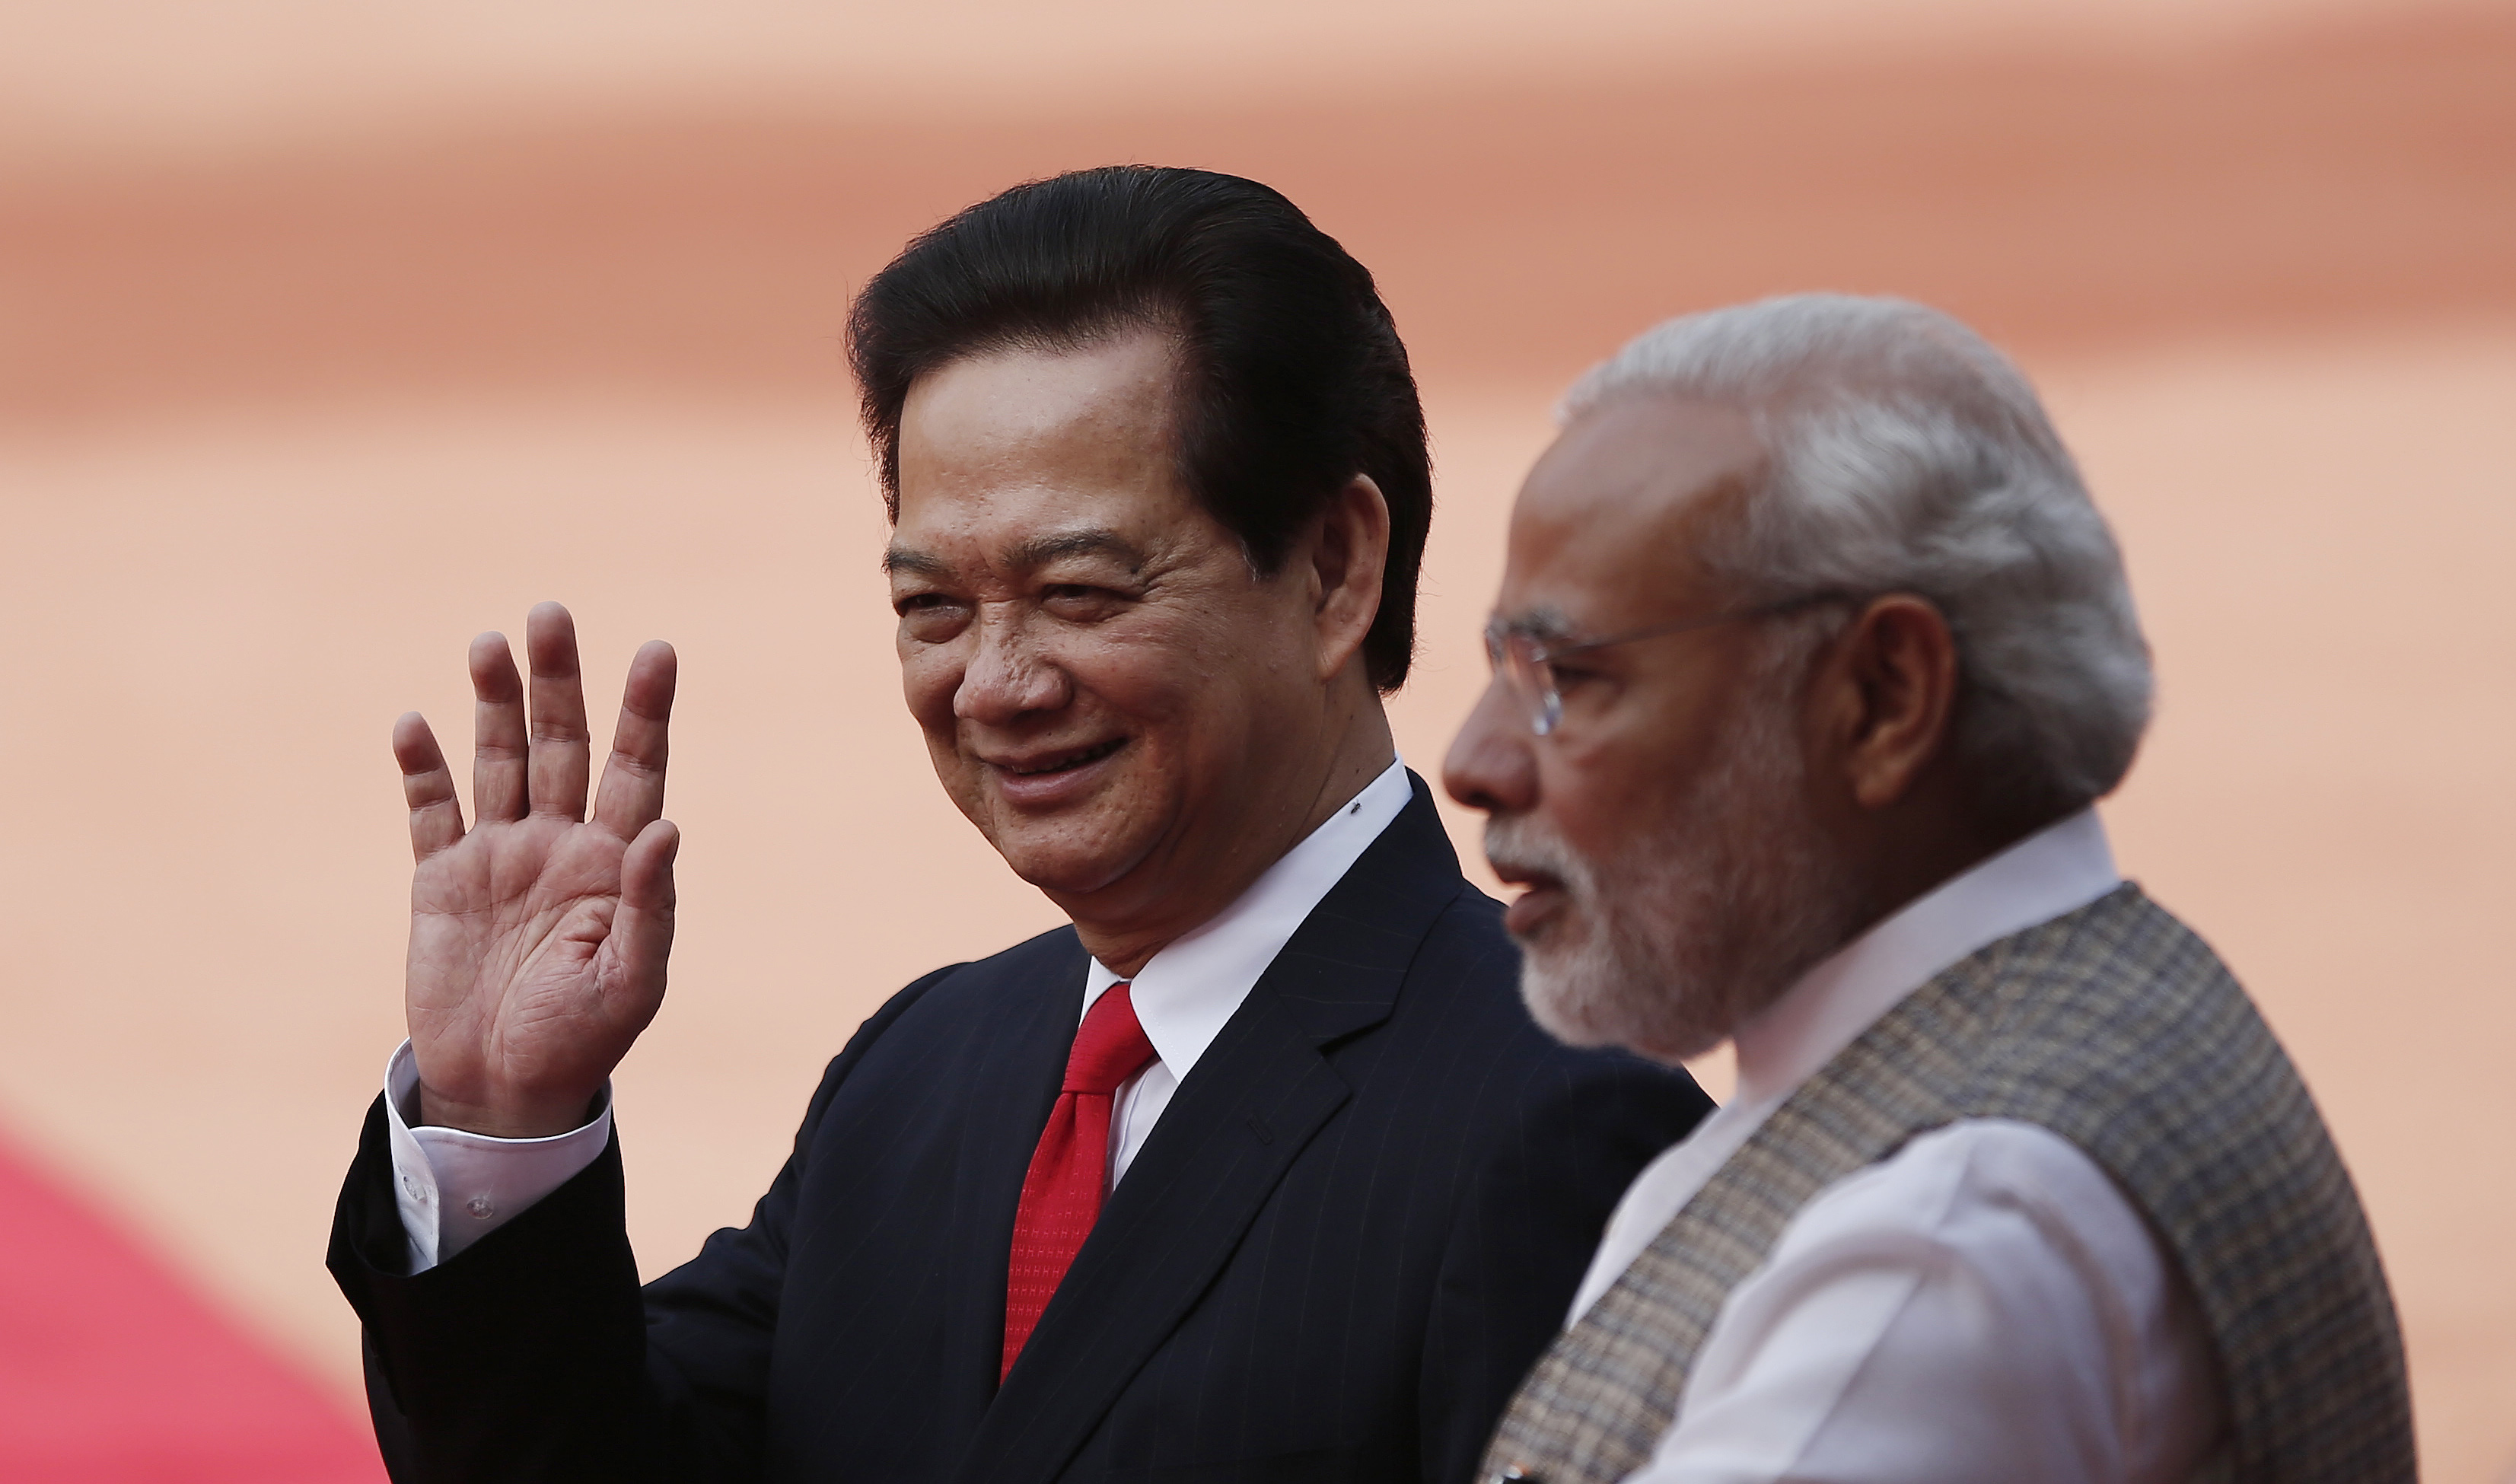 Vietnam's Prime Minister Nguyen Tan Dung waves next to his Indian counterpart Narendra Modi during Dung's ceremonial reception at the forecourt of India's presidential palace in New Delhi on Oct. 28, 2014